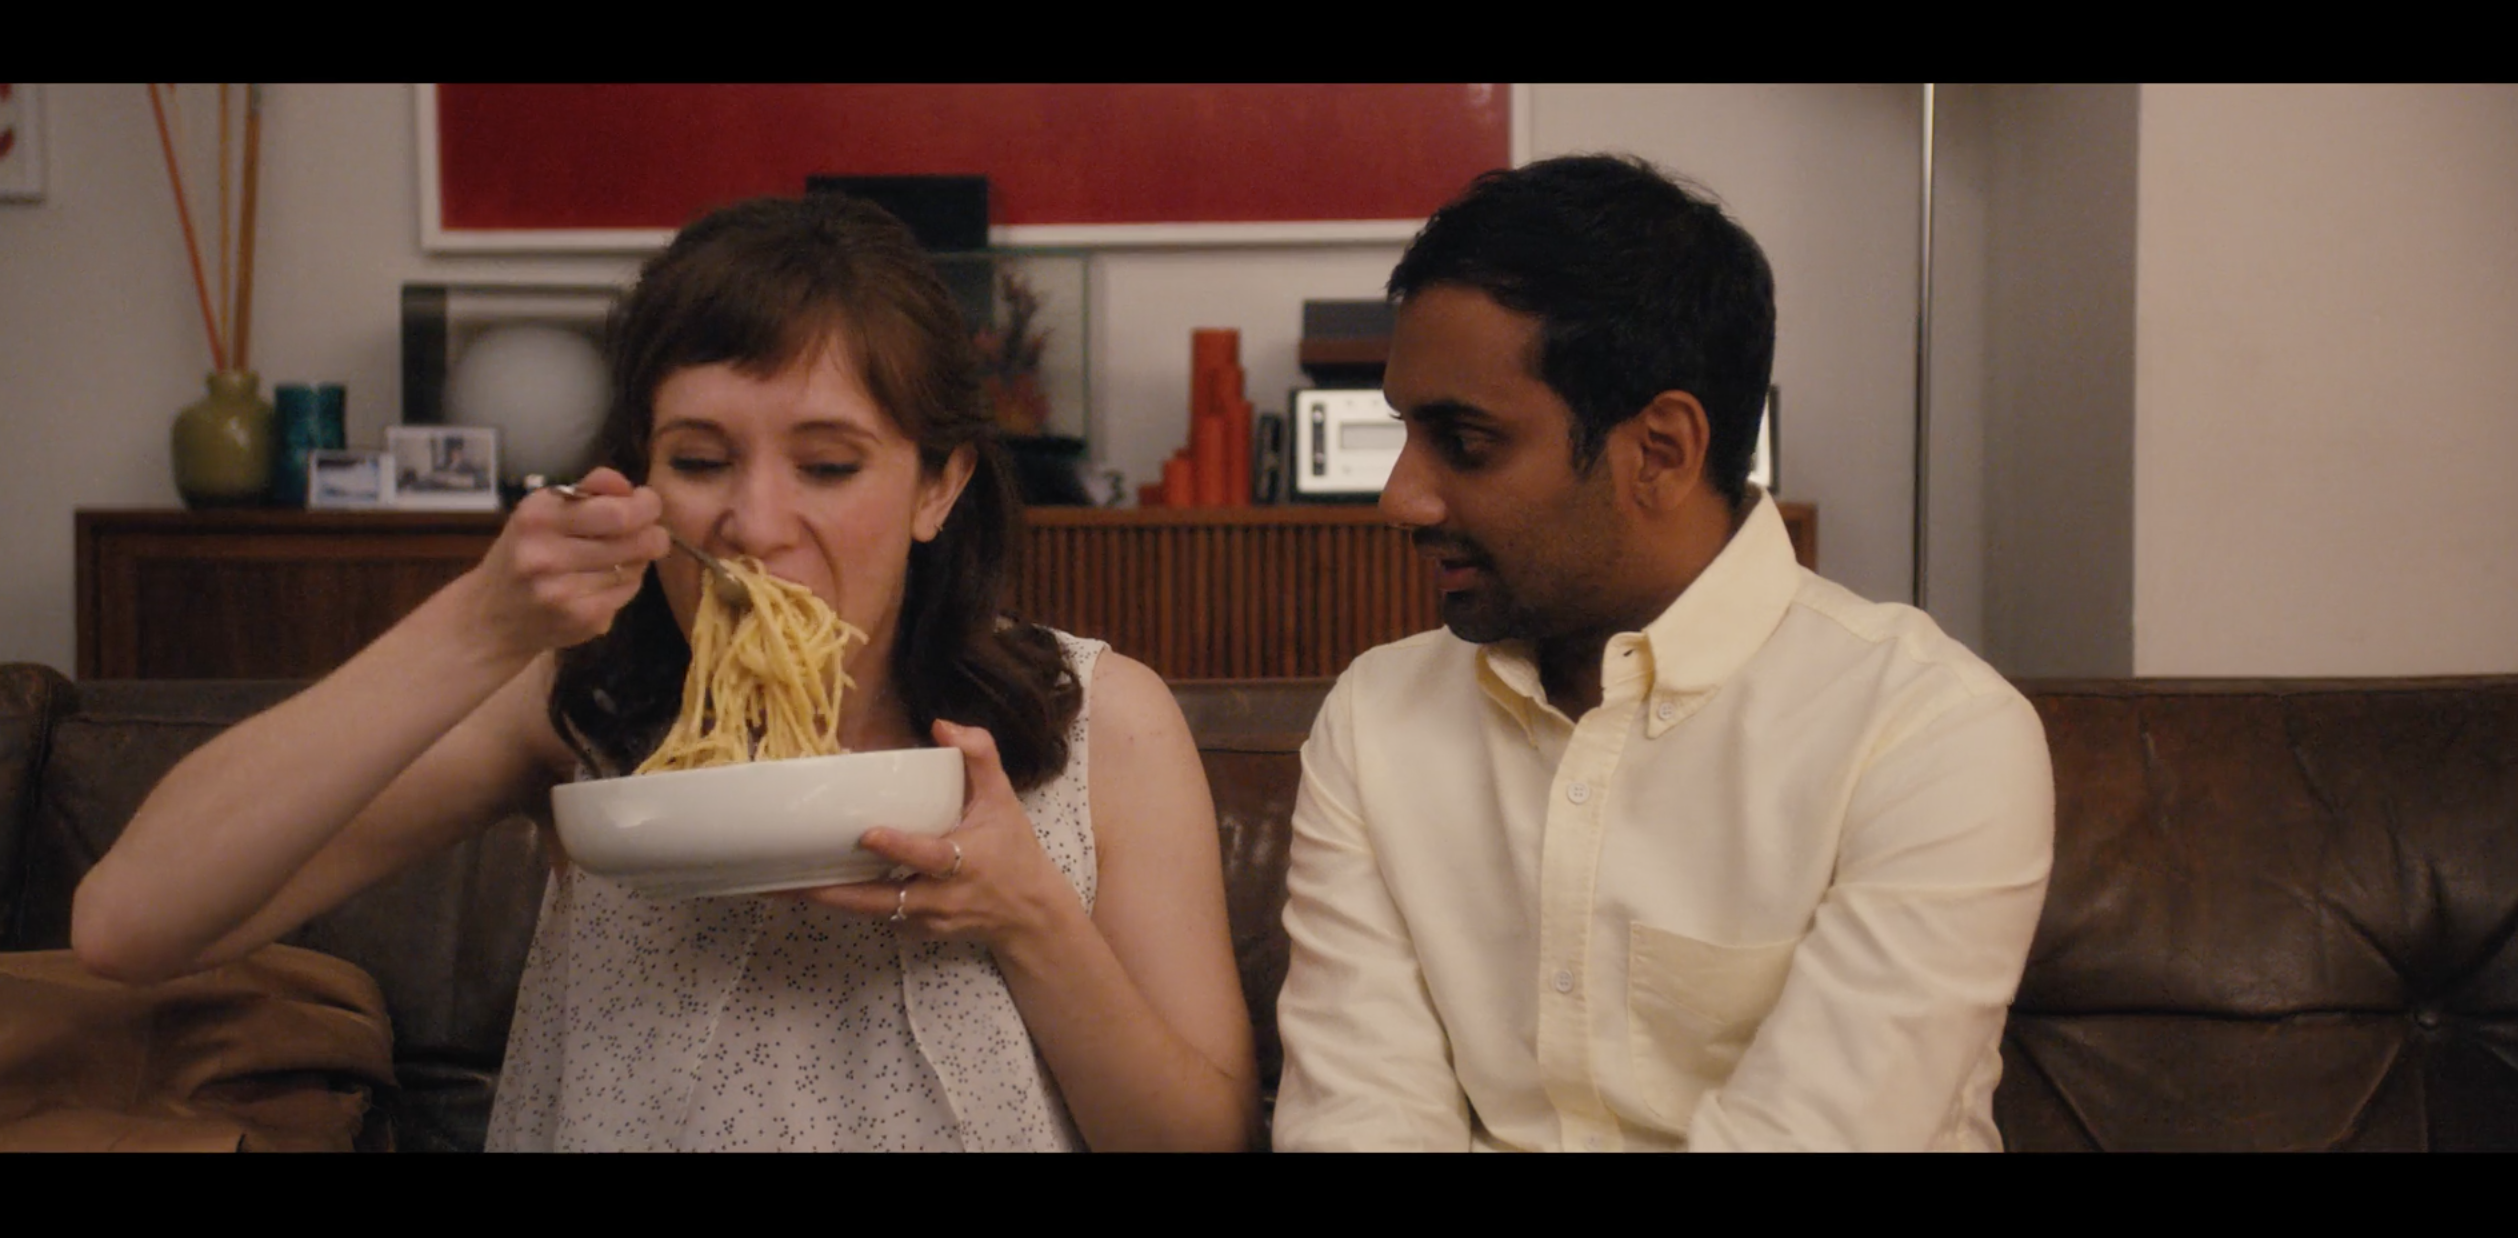 Netflix master of none review